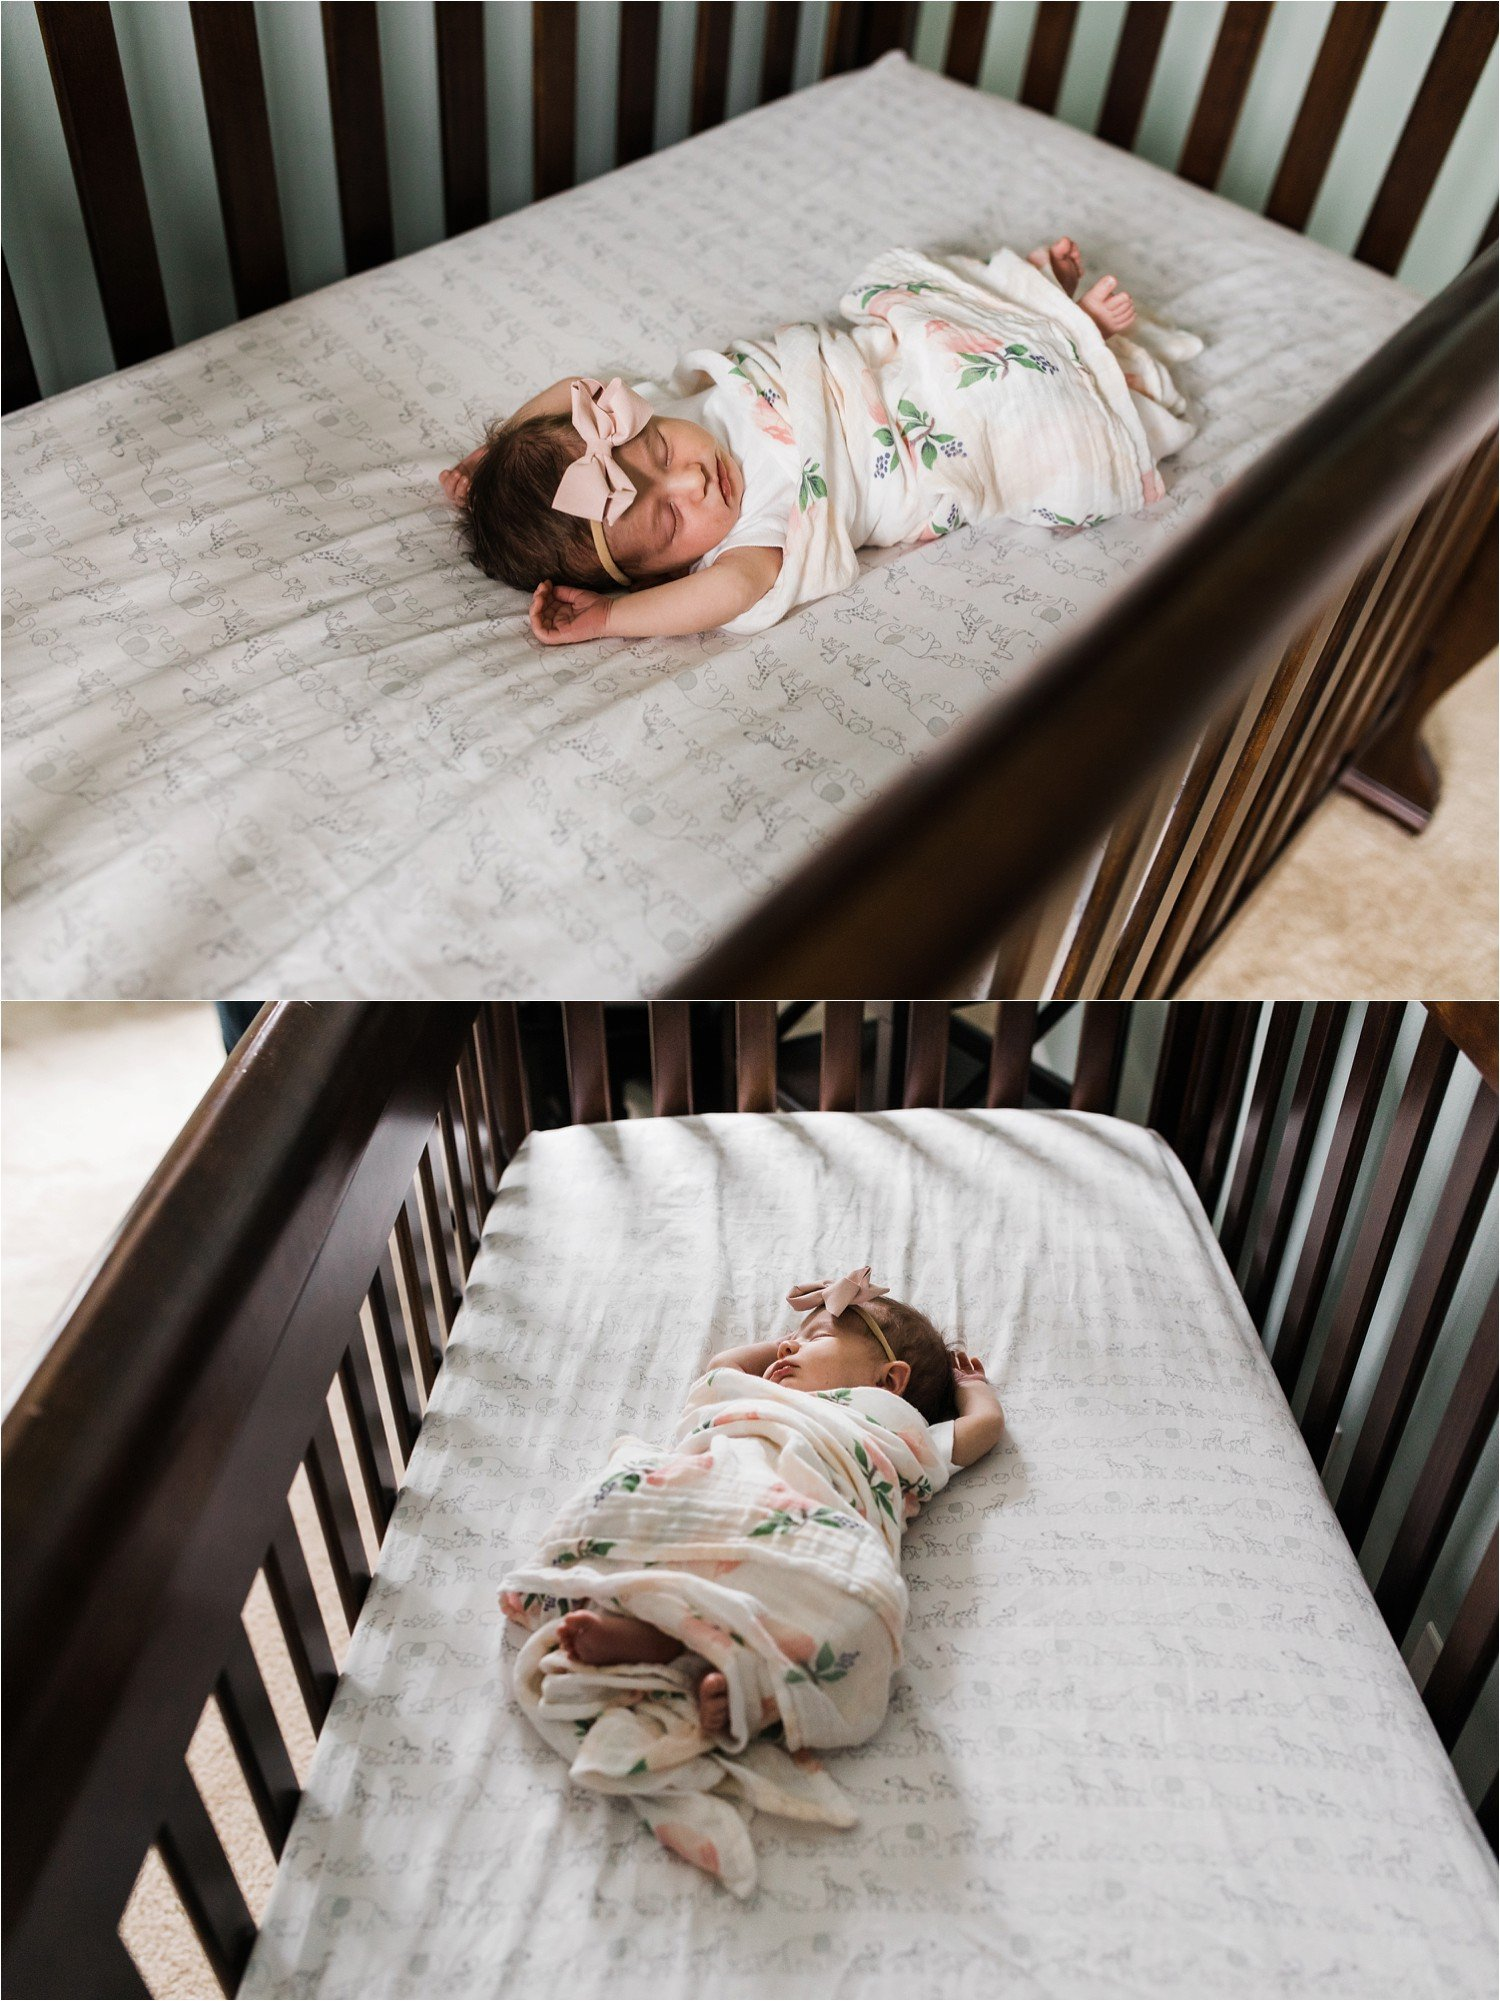 newborn baby sleeping in crib